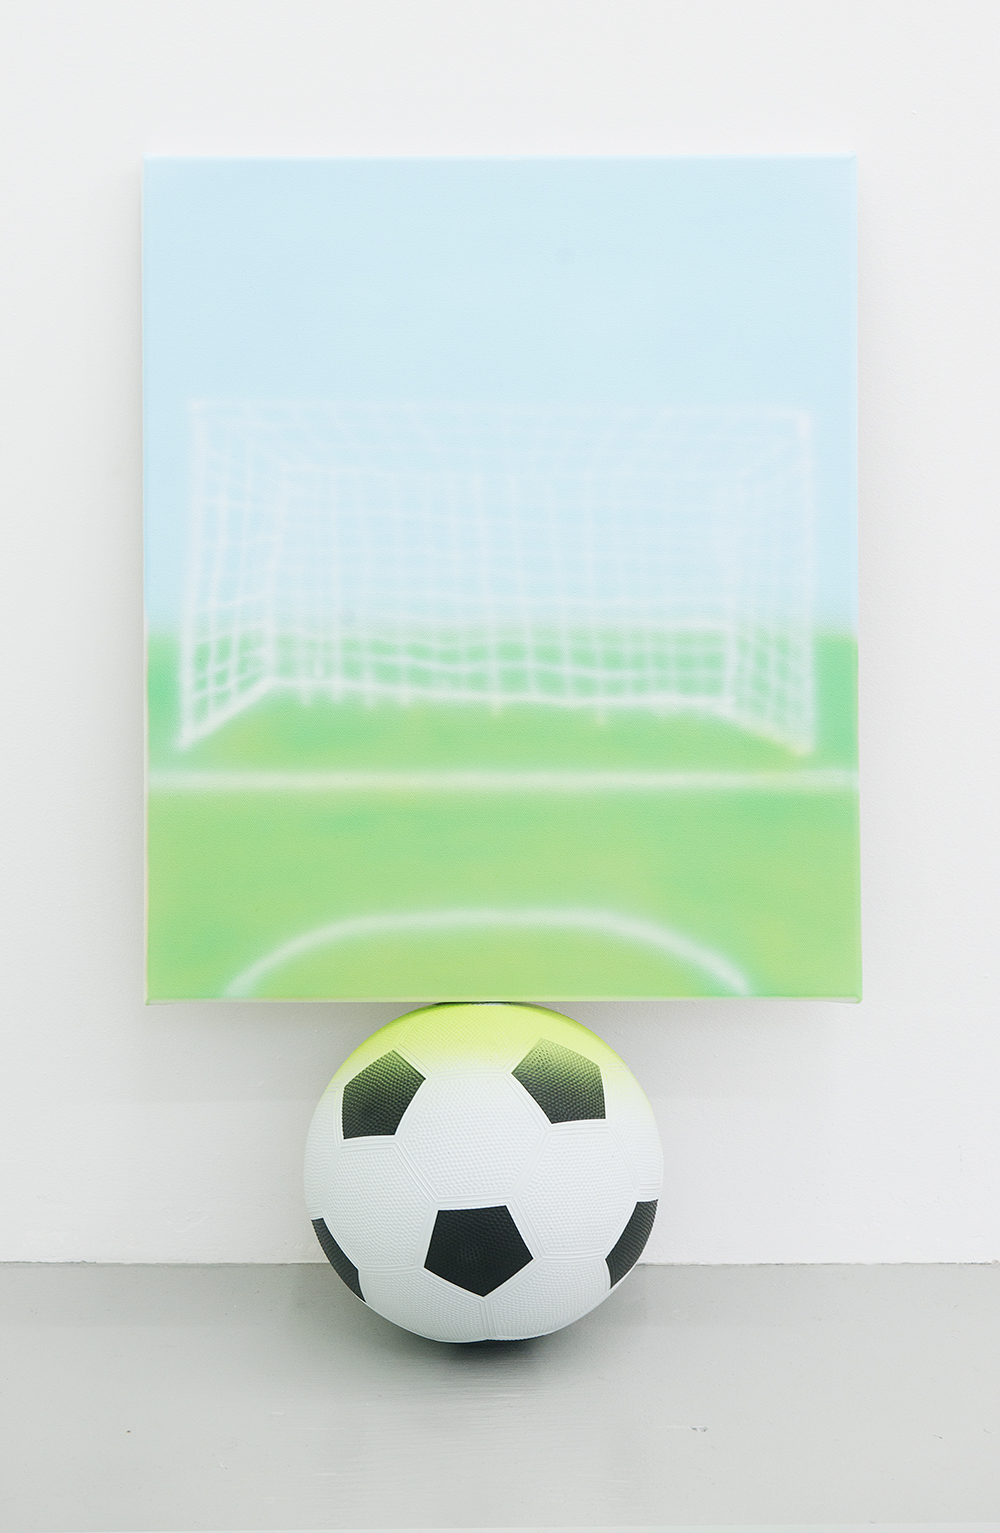 Jonny Paul Gillette Goal on soccer ball, 2015 Acrylic polymer on canvas, soccer ball